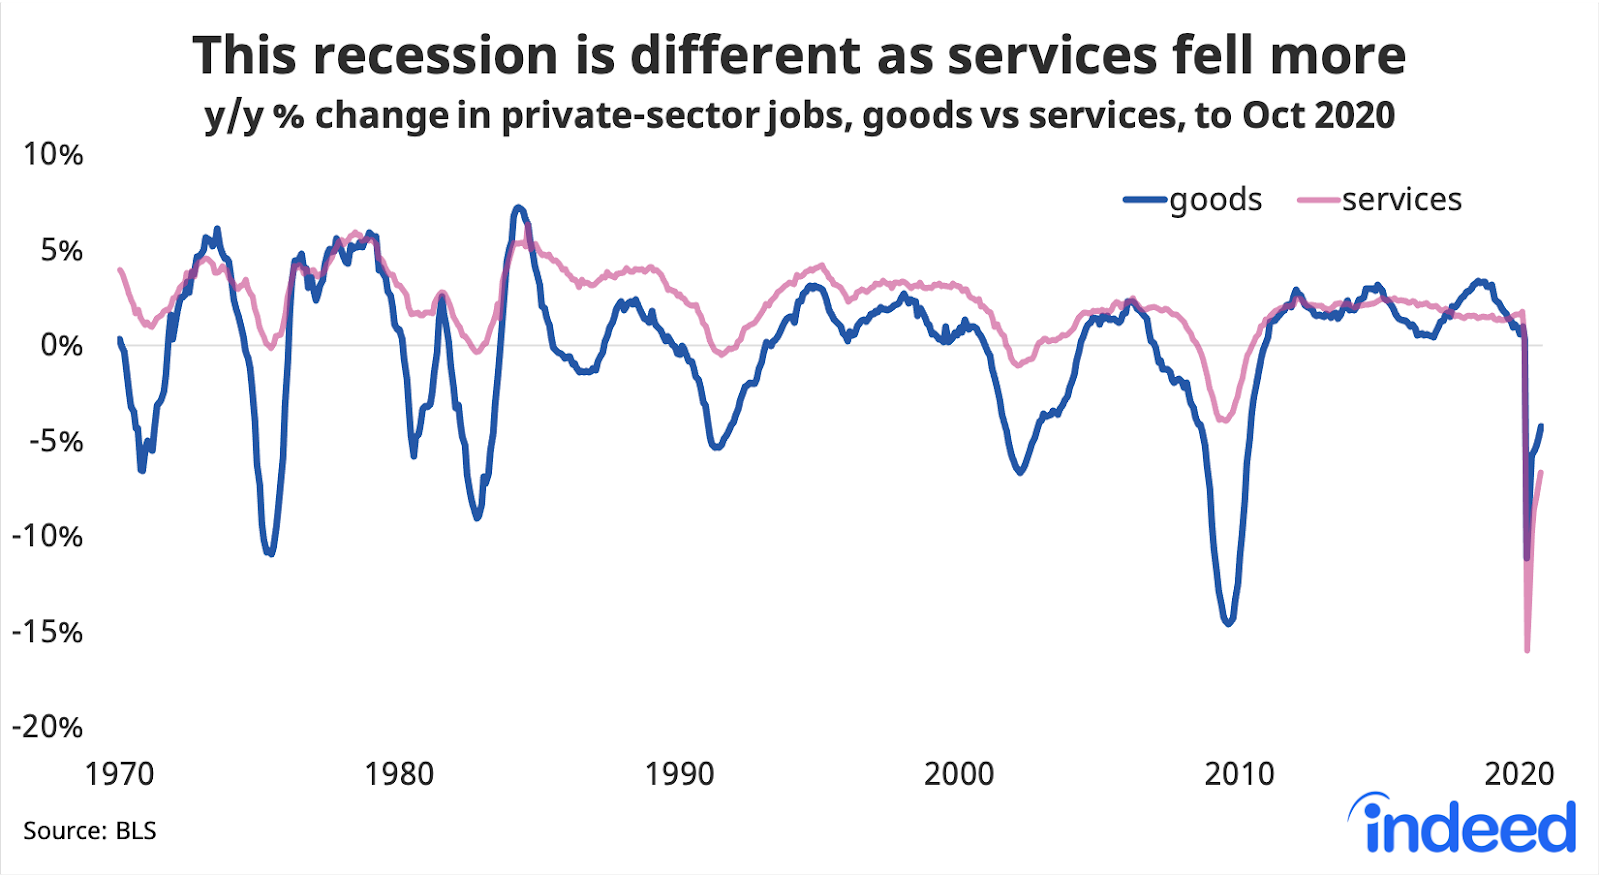 Line graph showing recession caused by pandemic is different as services fell more